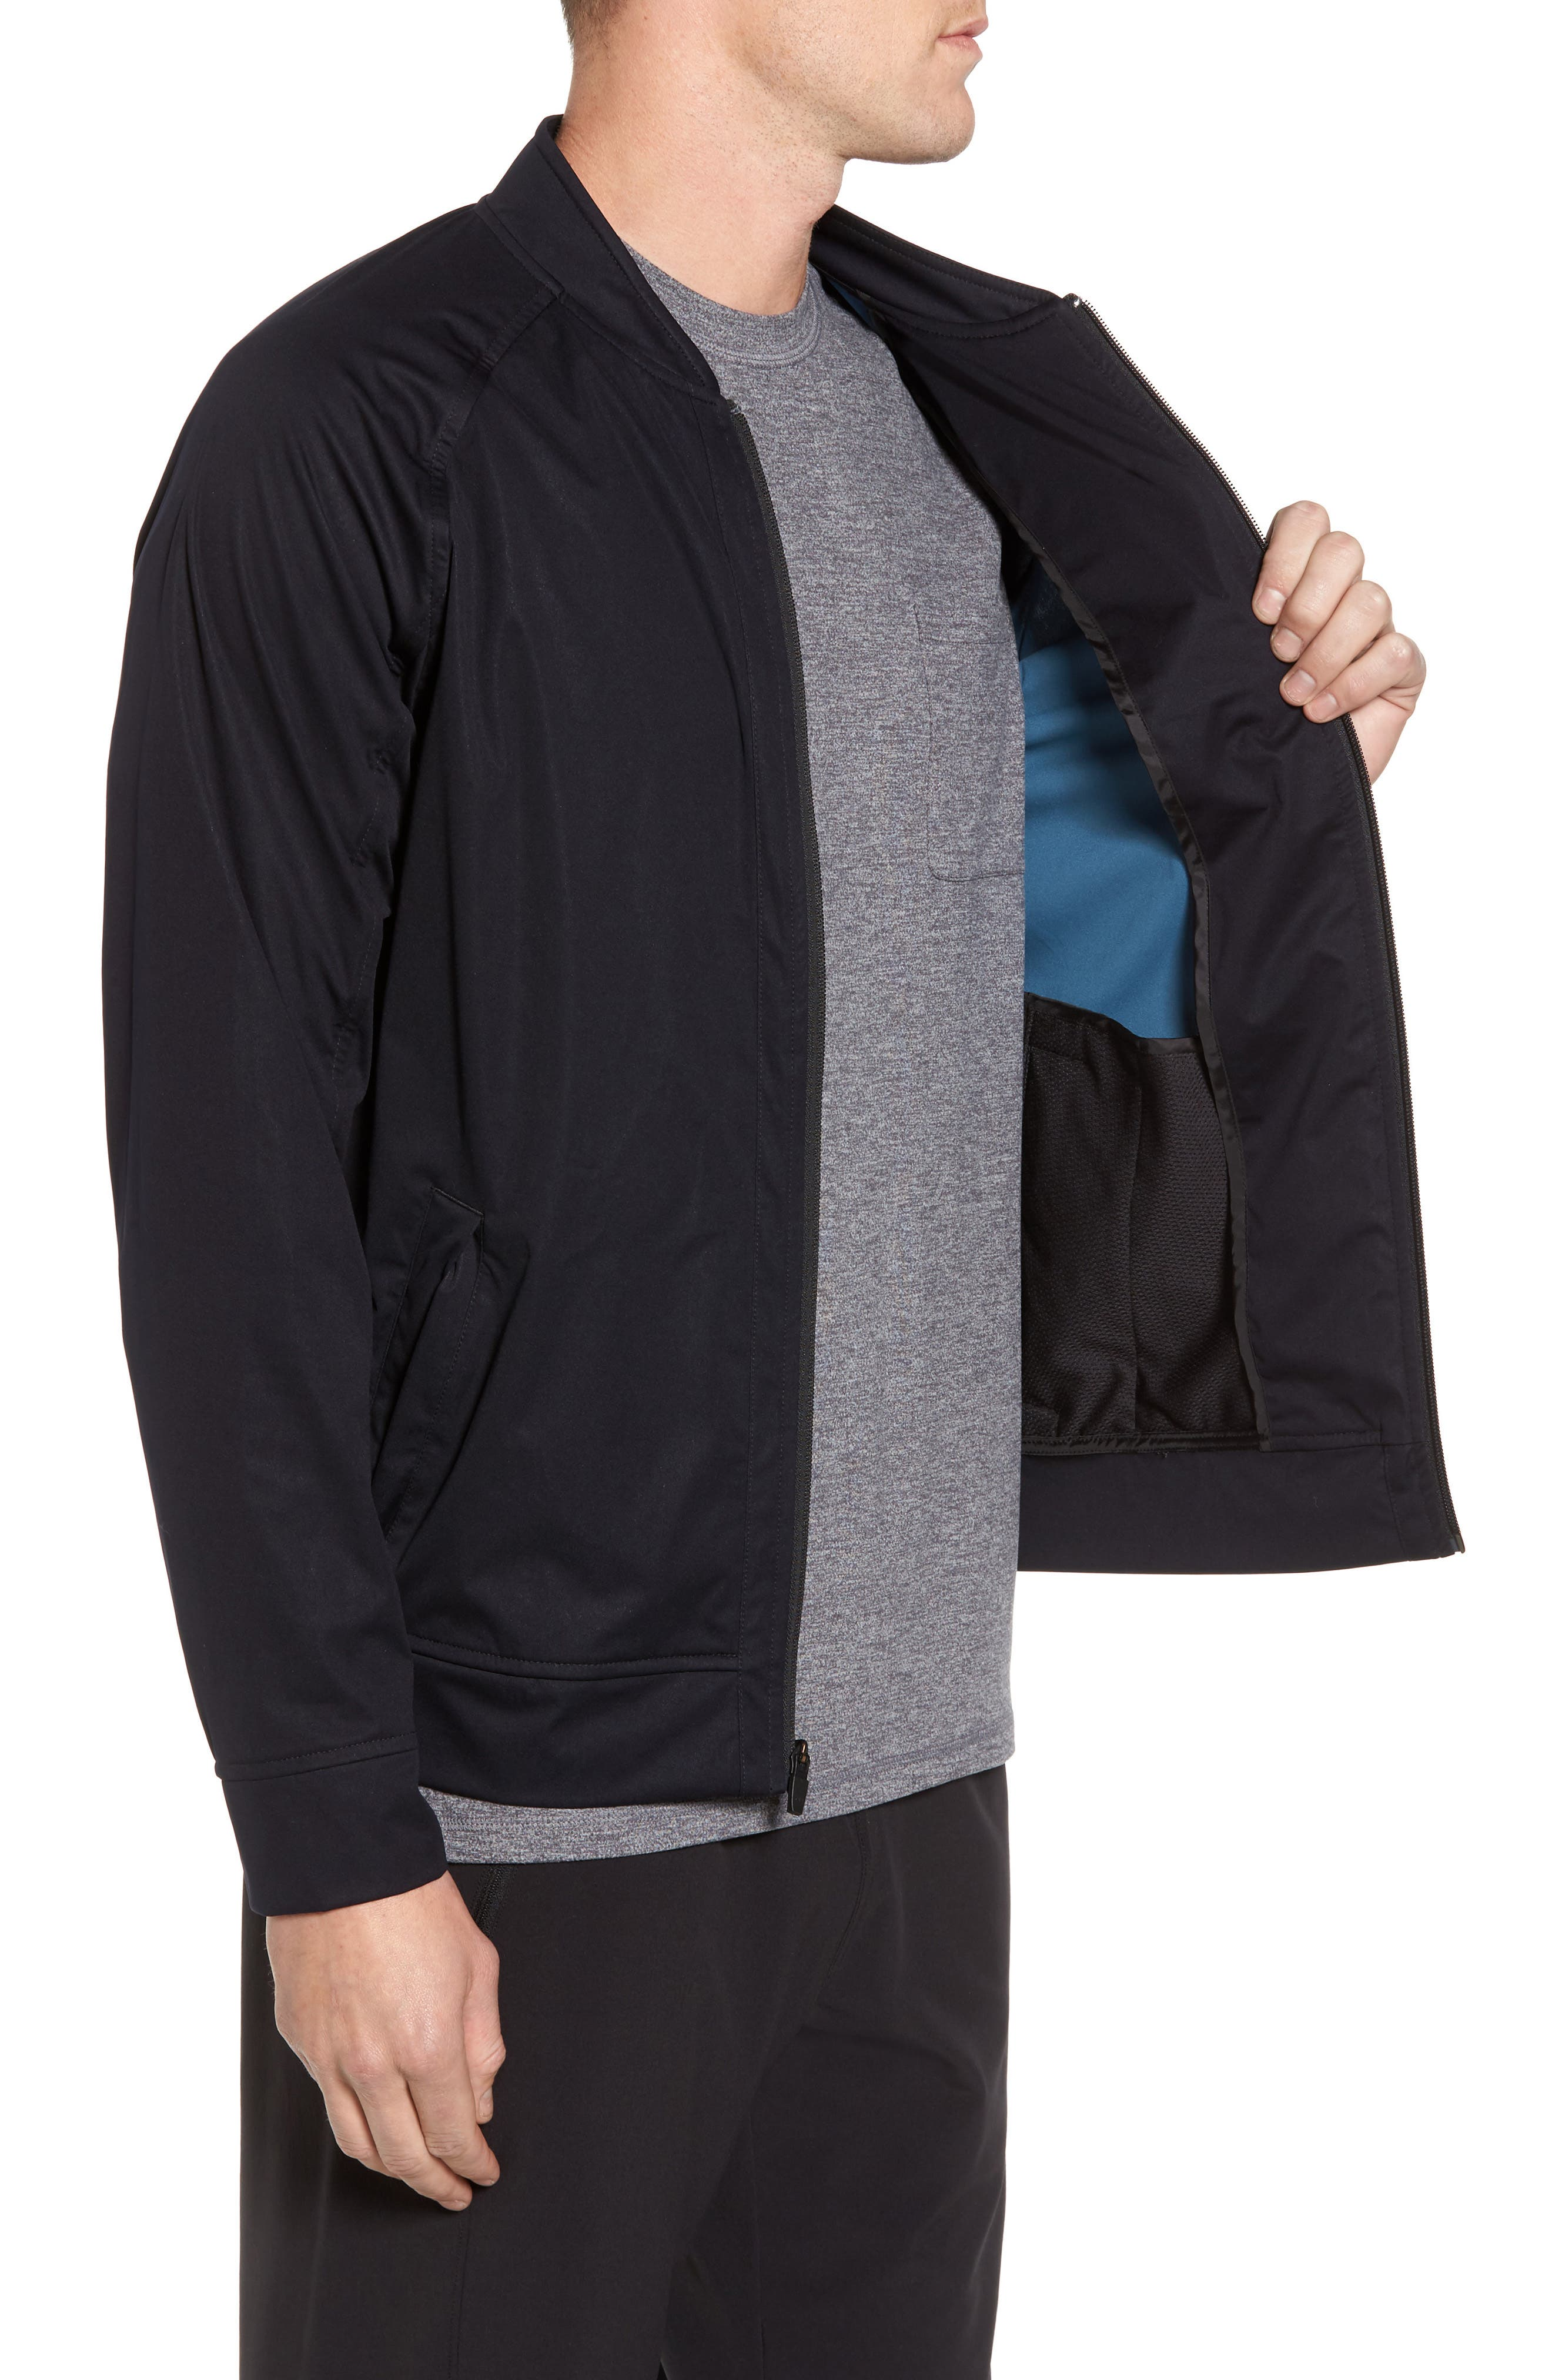 Softshell Bomber Jacket,                             Alternate thumbnail 3, color,                             Black